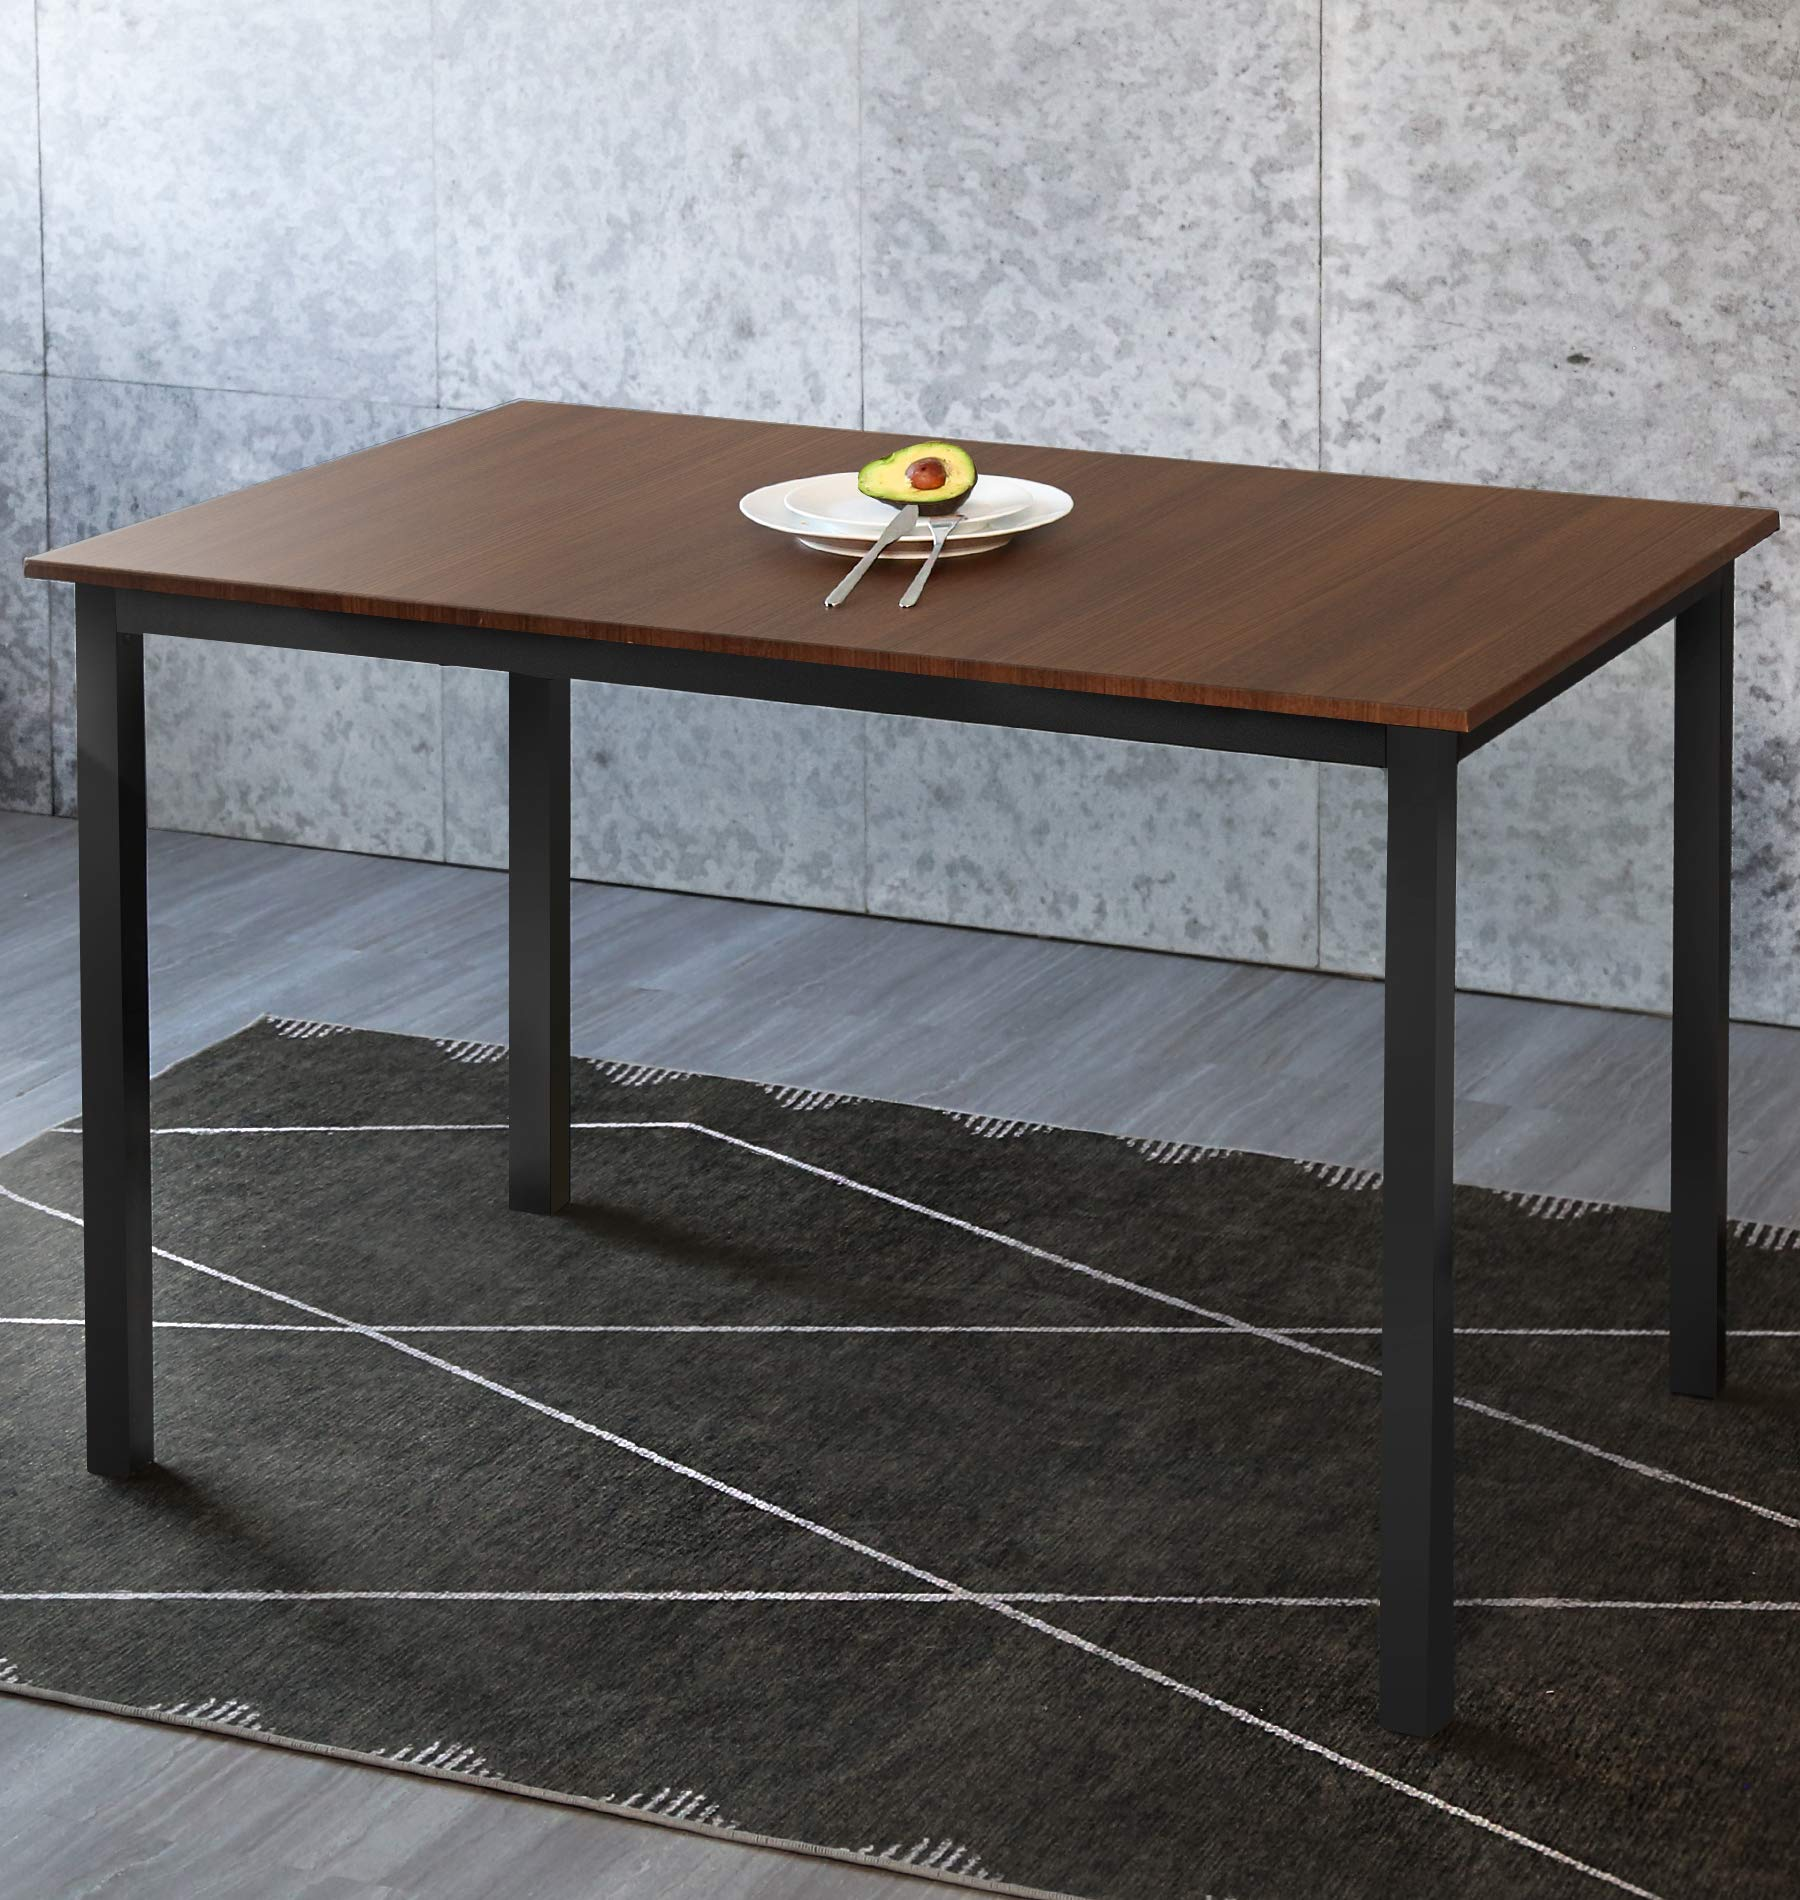 Dining Table Rectangular Kitchen Table Modern Table Desk Computer Desk Office Conference Desk Table,Brown(Table Only)